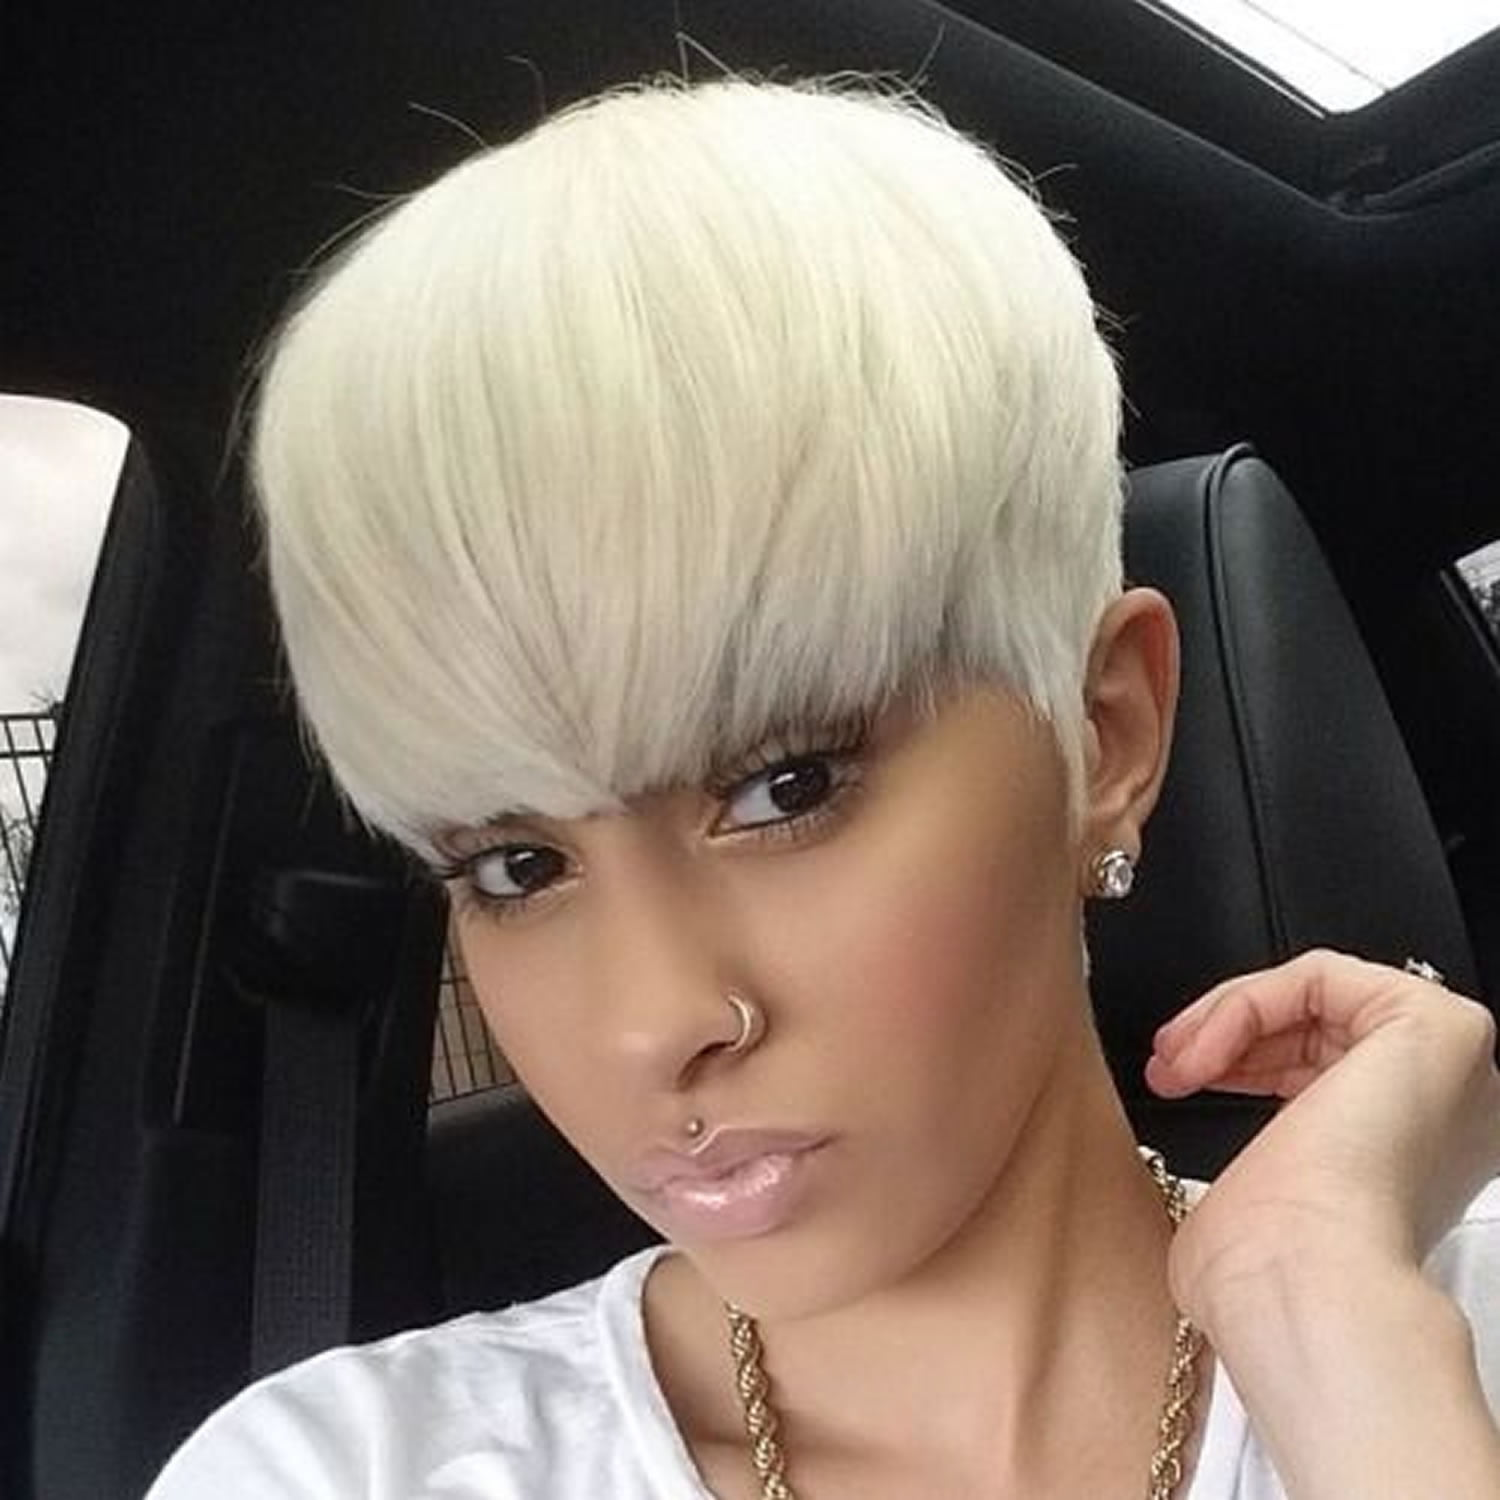 2018 Short Haircuts for Black Women - 67 Pixie Short Black Hair ideas - Page 12 - HAIRSTYLES